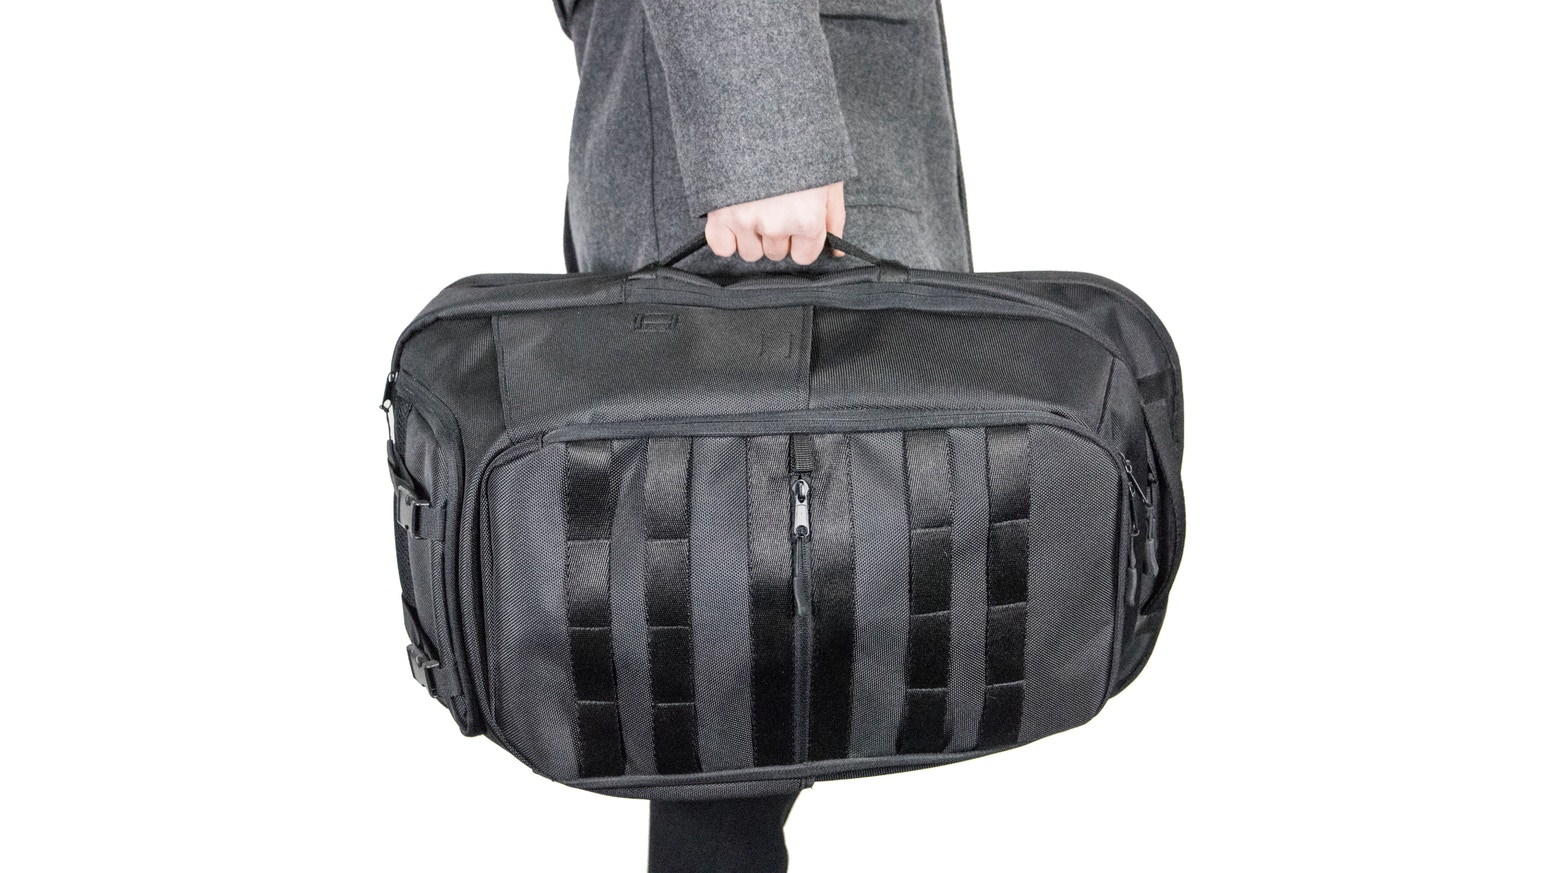 Bagram Pack 3 Bags In 1 Backpack For Office Gym Travel By Organizer Pouch 5 Bag Is